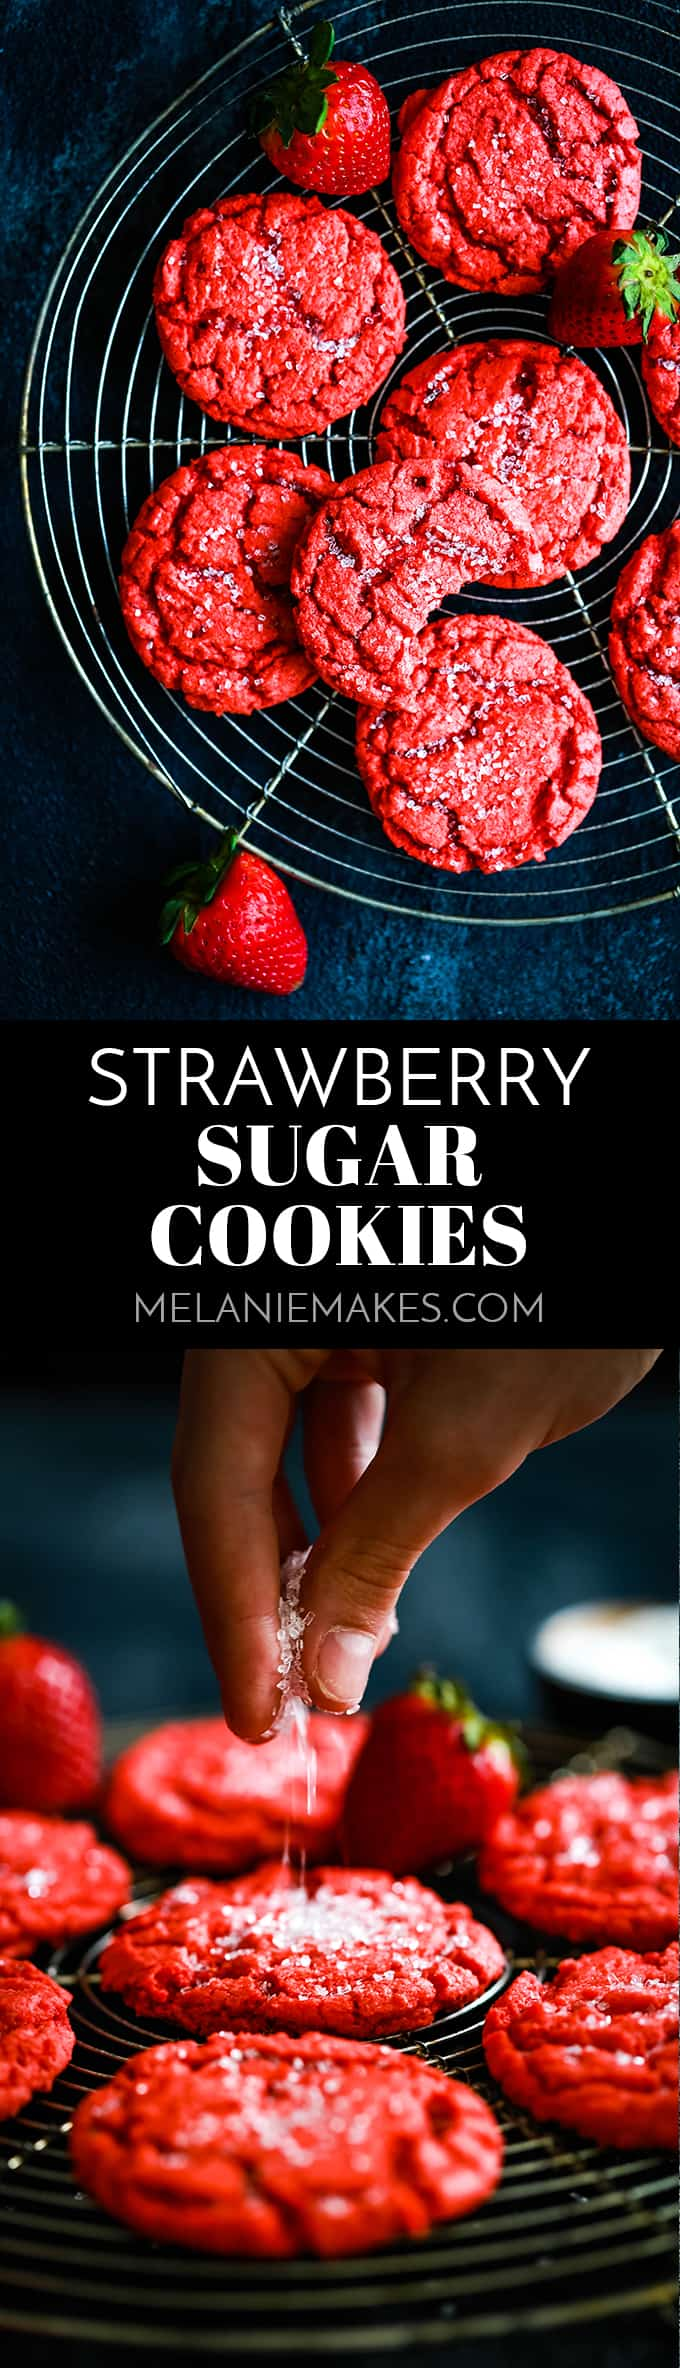 These buttery Strawberry Sugar Cookies have crisp edges, soft centers and – best of all! – a burst of fresh, sweet strawberry flavor. #strawberry #cookies #sugarcookies #red #valentines #valentinesday #babyshowerideas